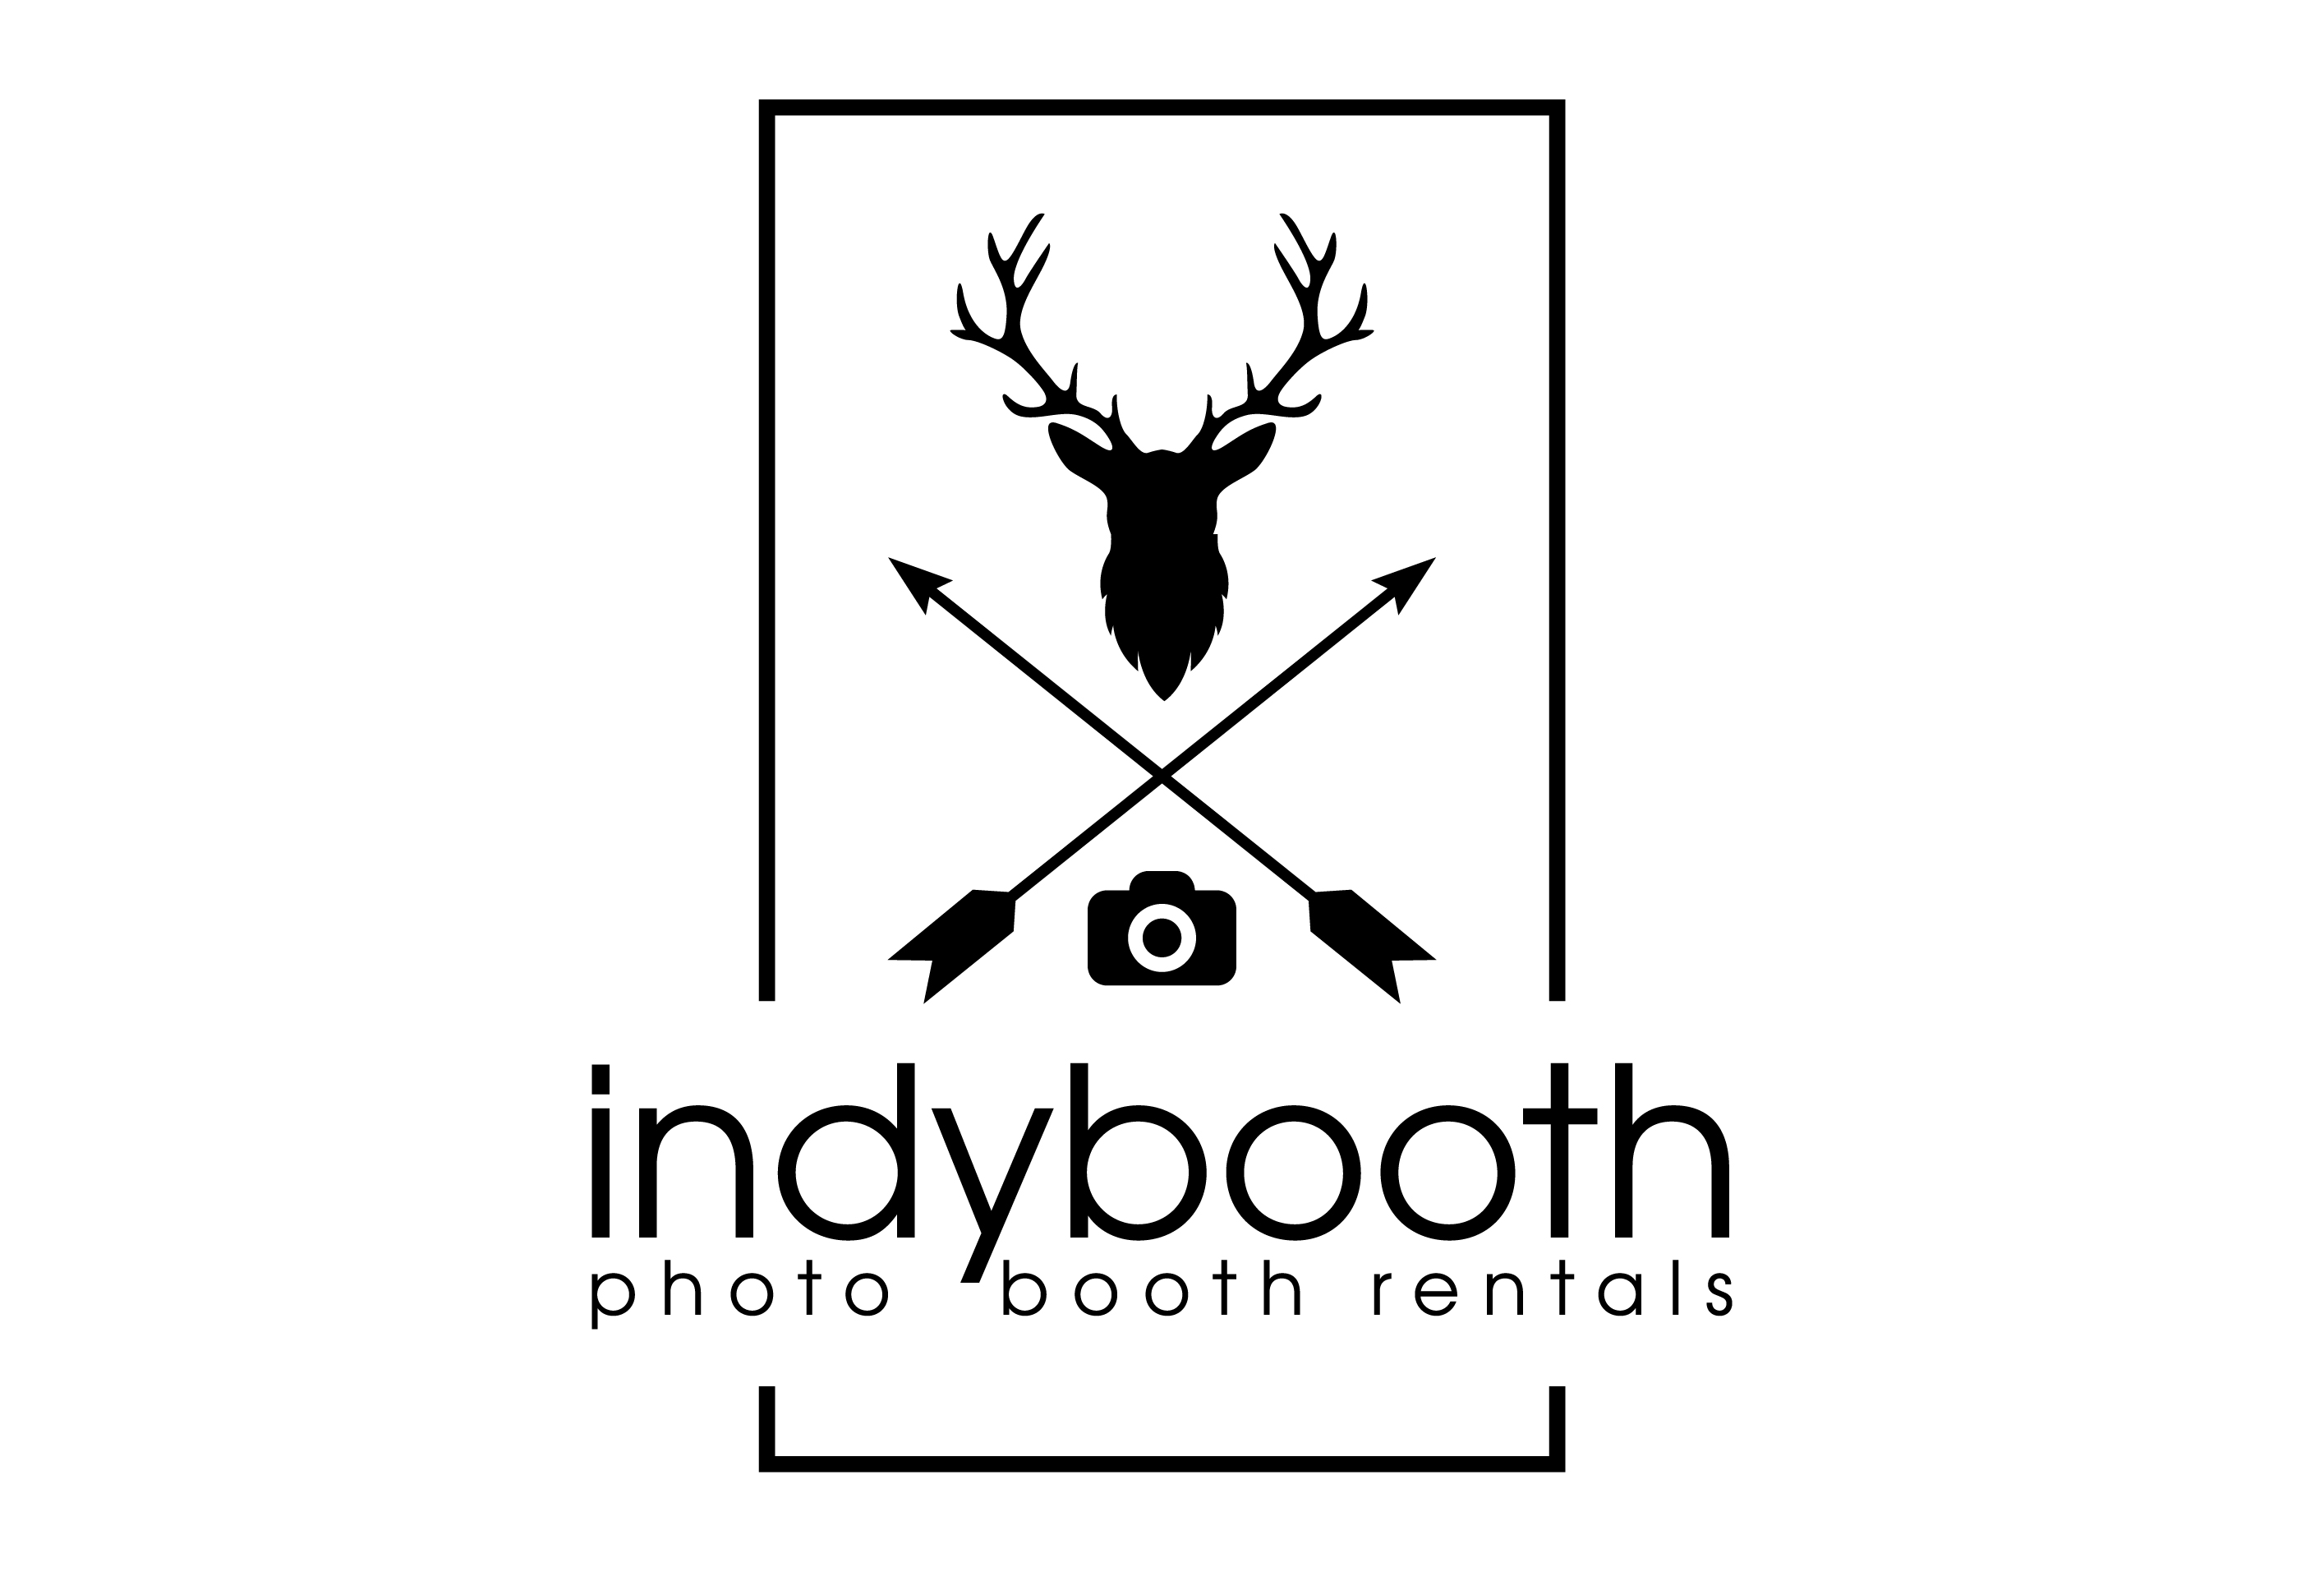 Indybooth logo